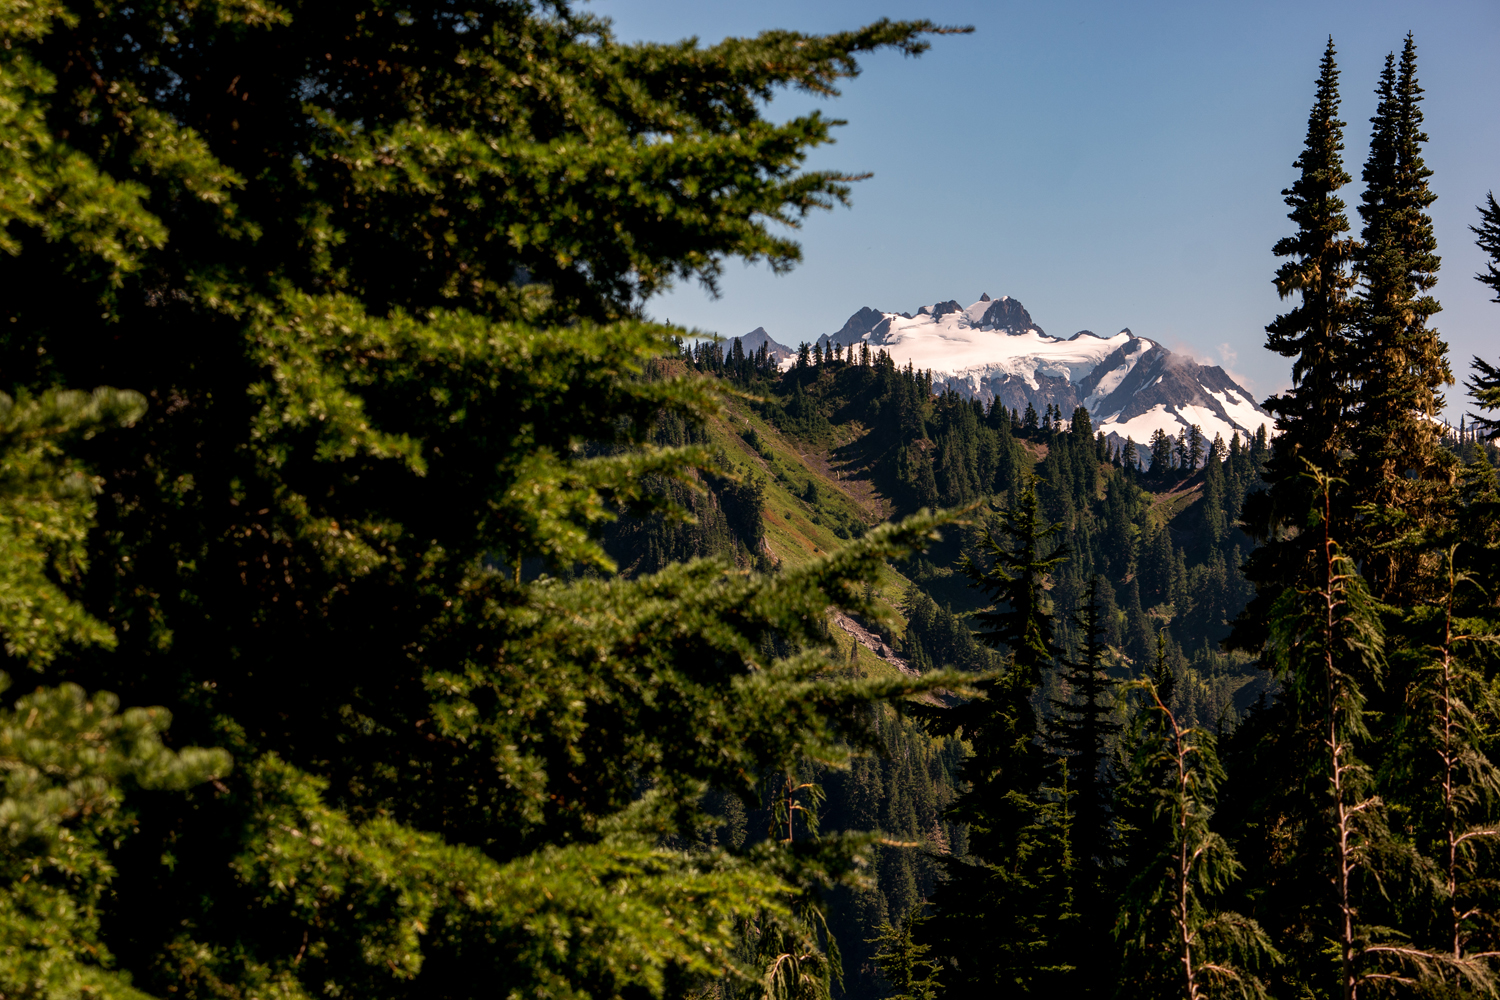 Wasim Muklashy Photography_Olympic National Park_High Divide Loop_084.jpg